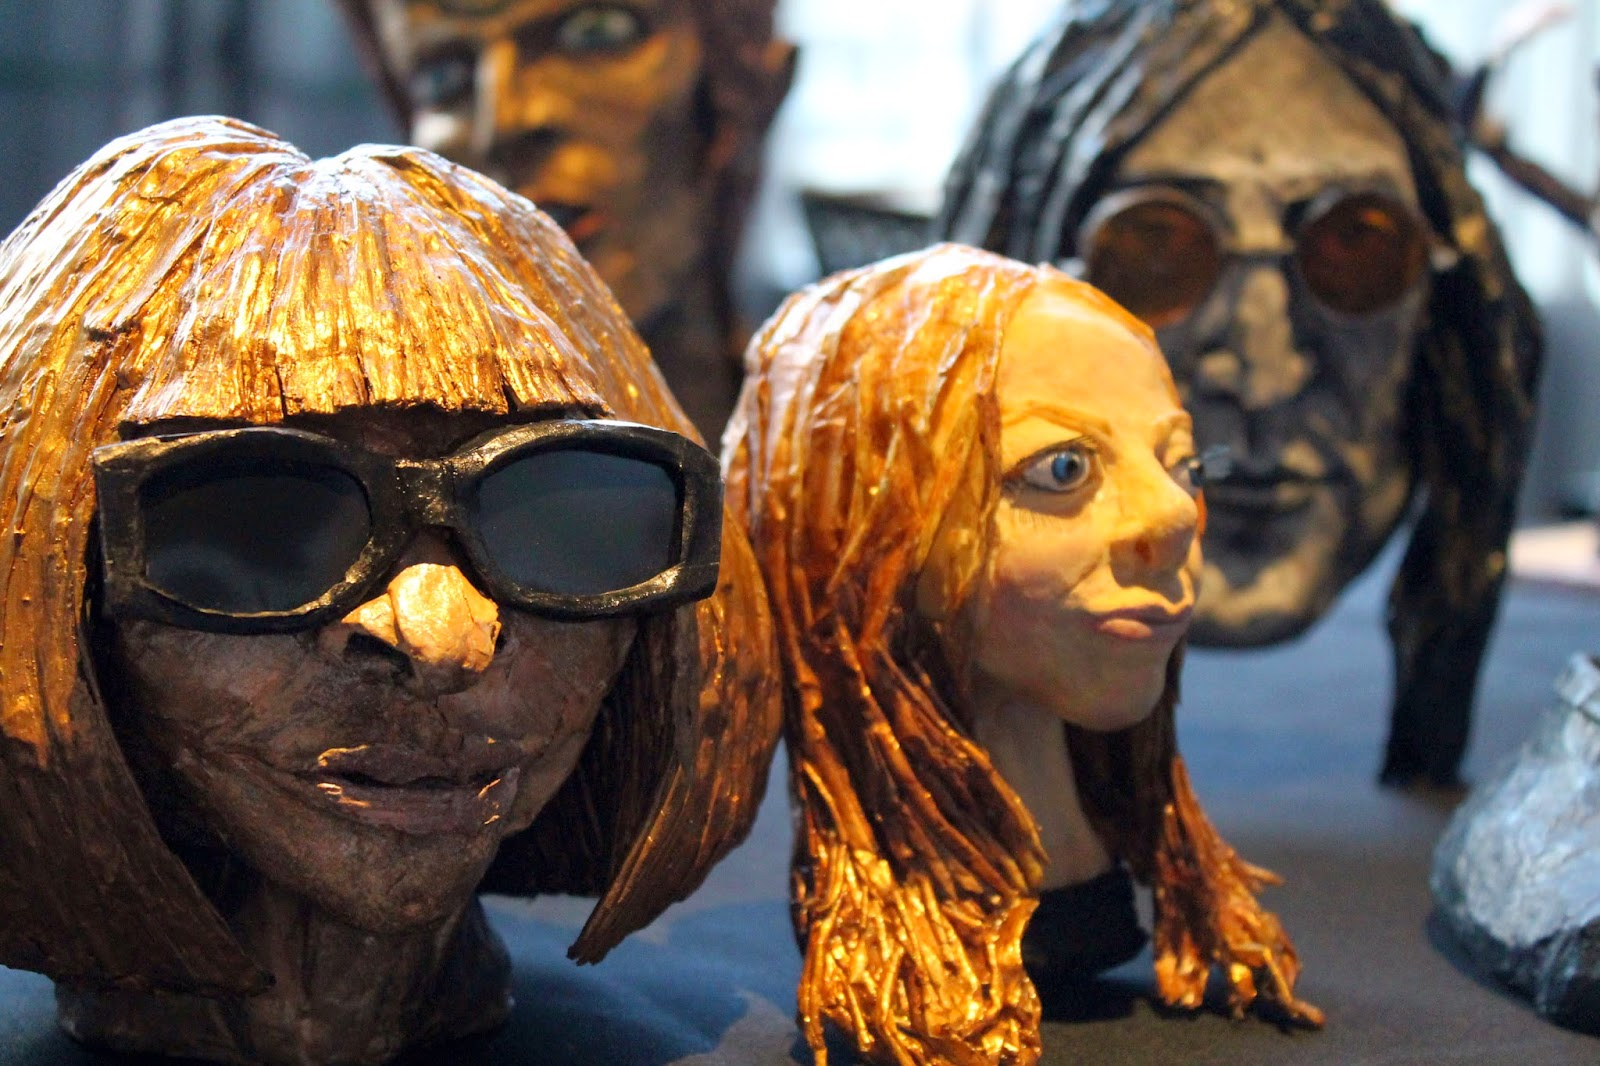 Anna wintour sculpture john lennon bowie by Flesh and Bone